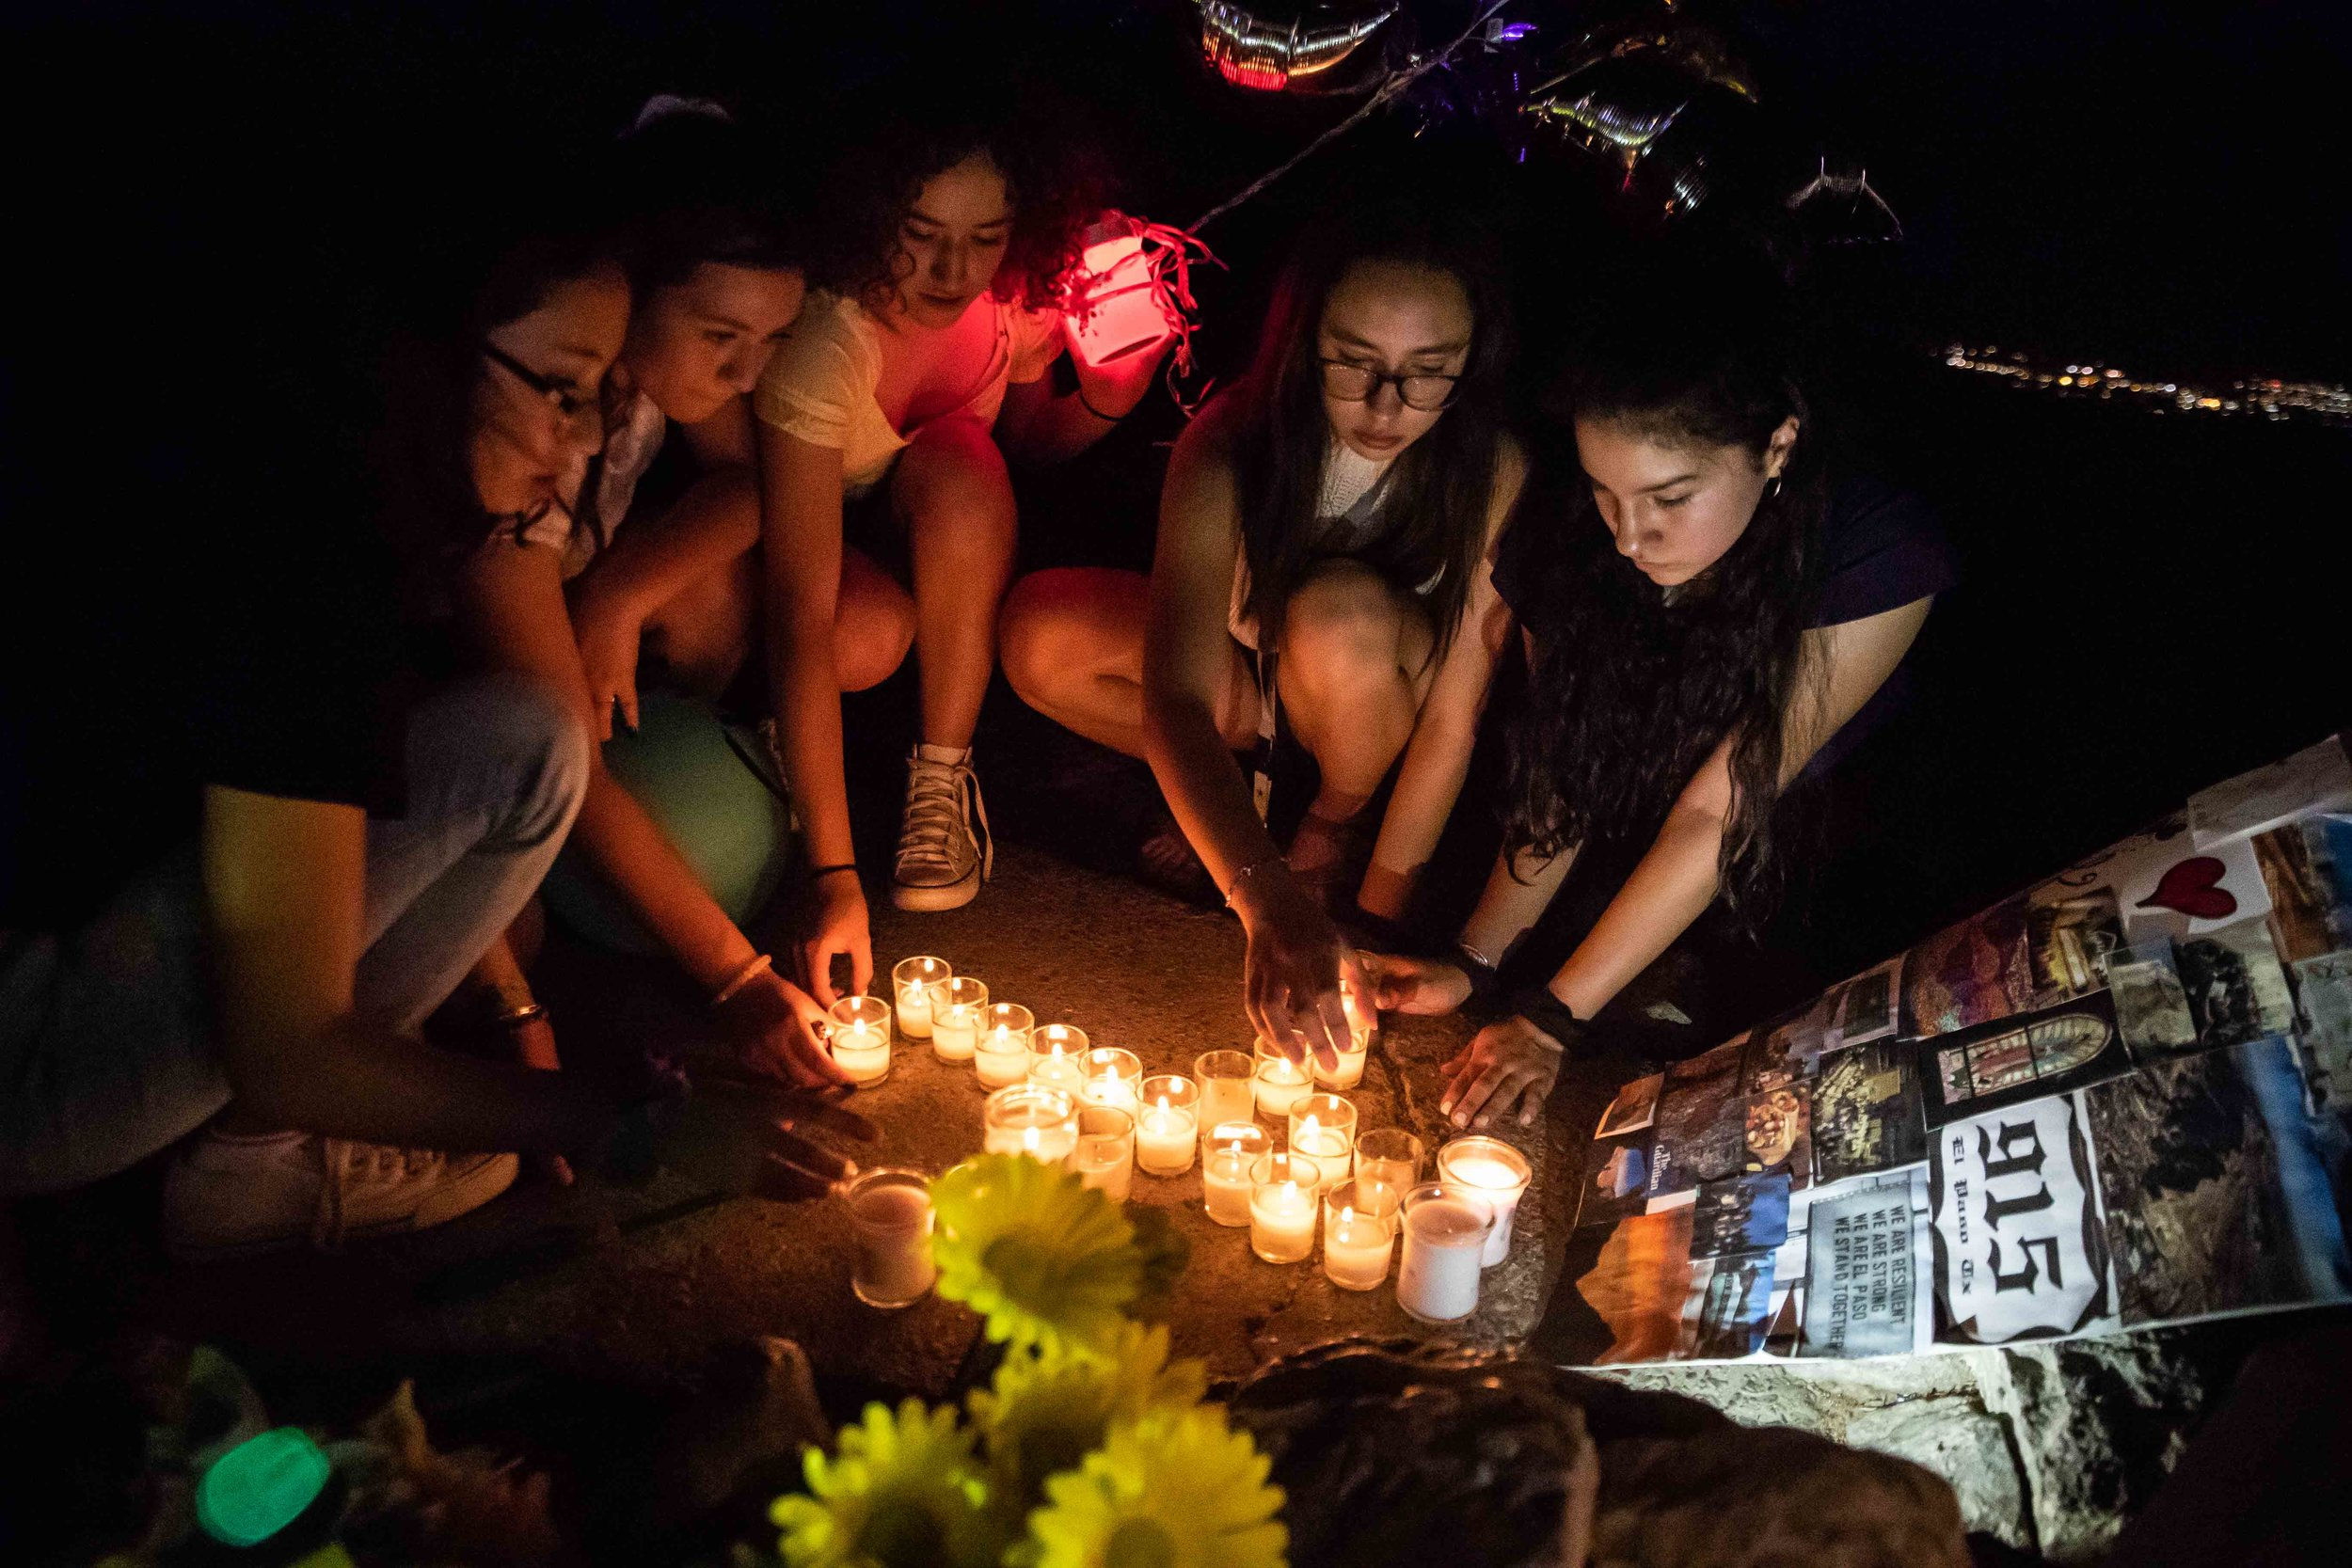 From left, Amanda Torres, Andrea Carrasco, Alexa Carrasco, Chloe Trujillo and Britney Martinez light candles at the Scenic Drive - Overlook to honor the victims of the mass shooting occurred in Walmart last Saturday monirng in El Paso on Monday, August 5, 2019.